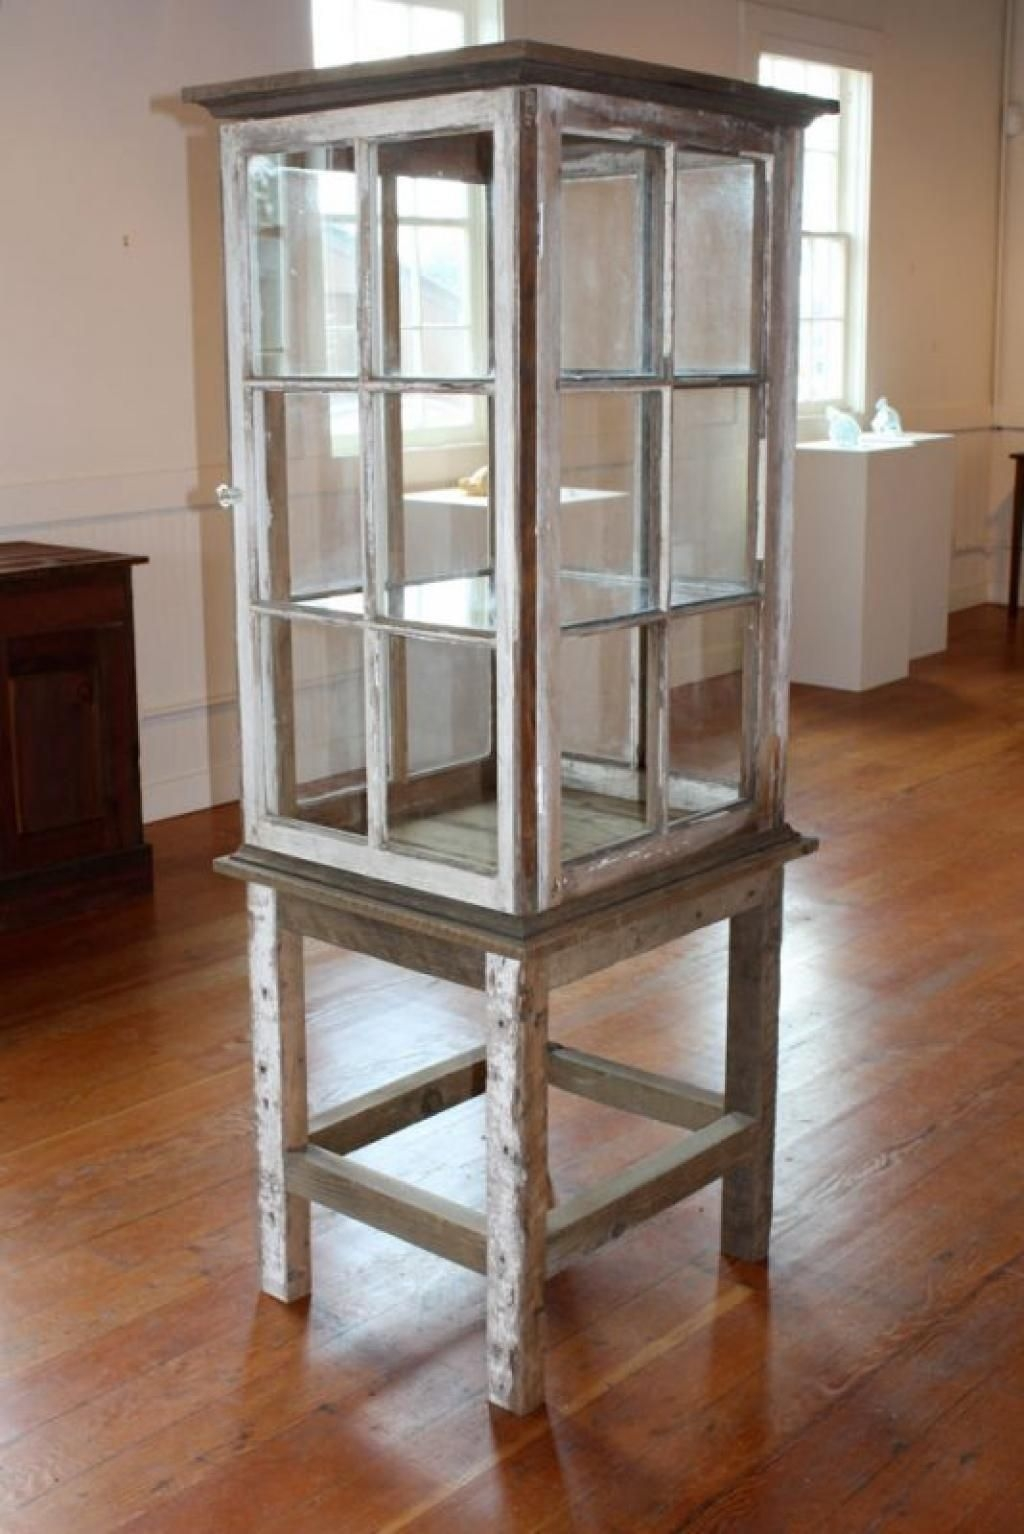 Recycled window display cabinet